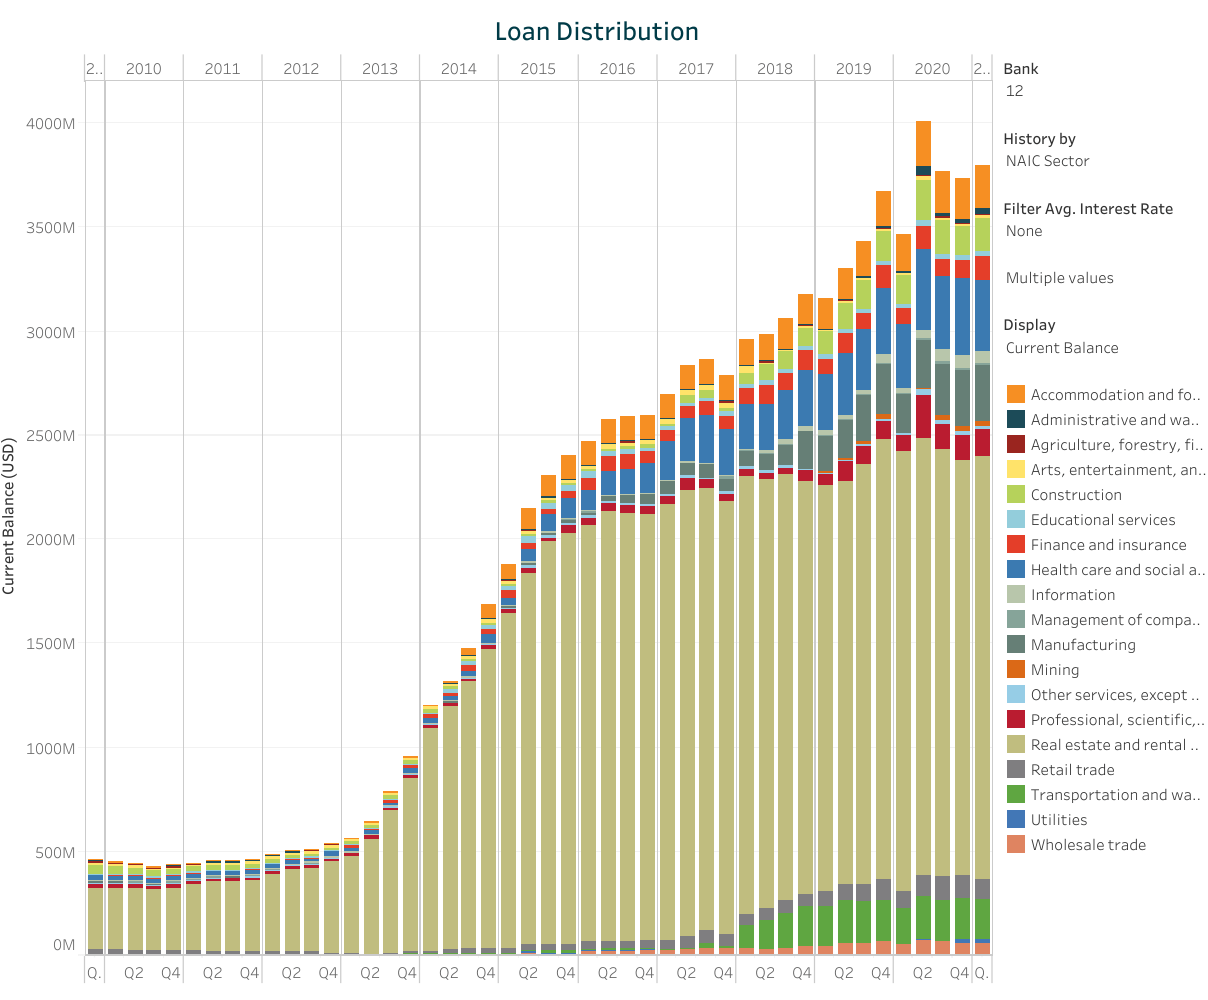 Pie Growth vs Market Share Wars: The Post-Pandemic Loan Growth Mystery